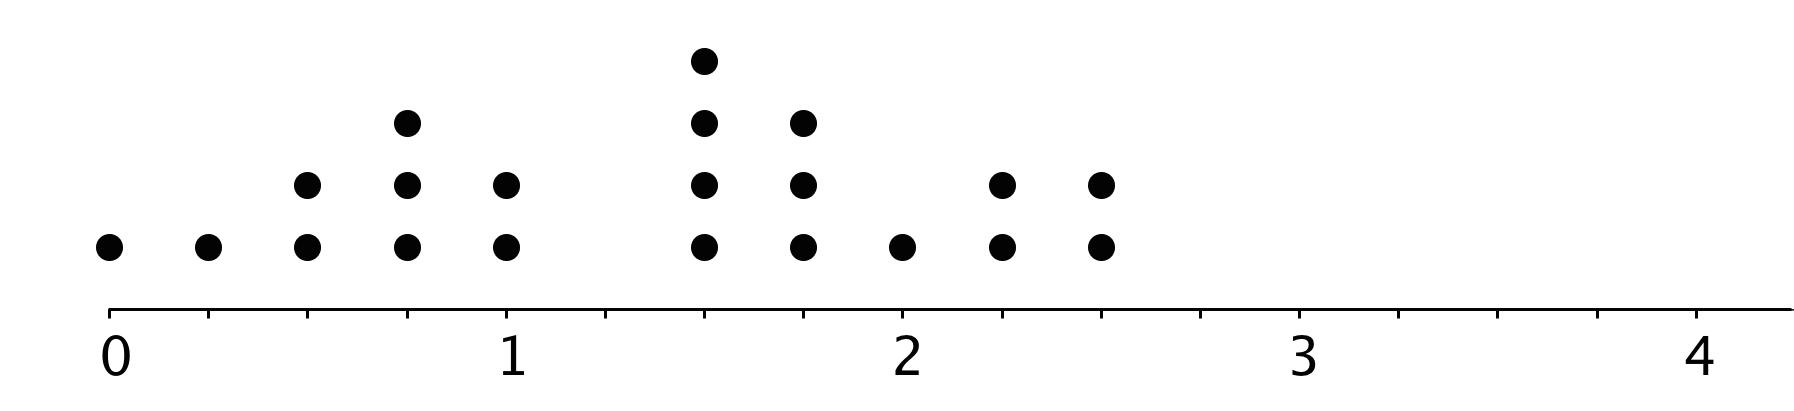 A dot plot with the numbers 0 through 4 indicated. There are 3 evenly spaced tick marks between each number. The data are as follows: 0, 1 dot. One-fourth, 1 dot. One-half, 2 dots. Three-fourths, 3 dots. 1, 2 dots. 1 and a half, 4 dots. 1 and three-fourths, 3 dots. 2, 1 dot. 2 and one-fourth, 2 dots. 2 and a half, 2 dots.